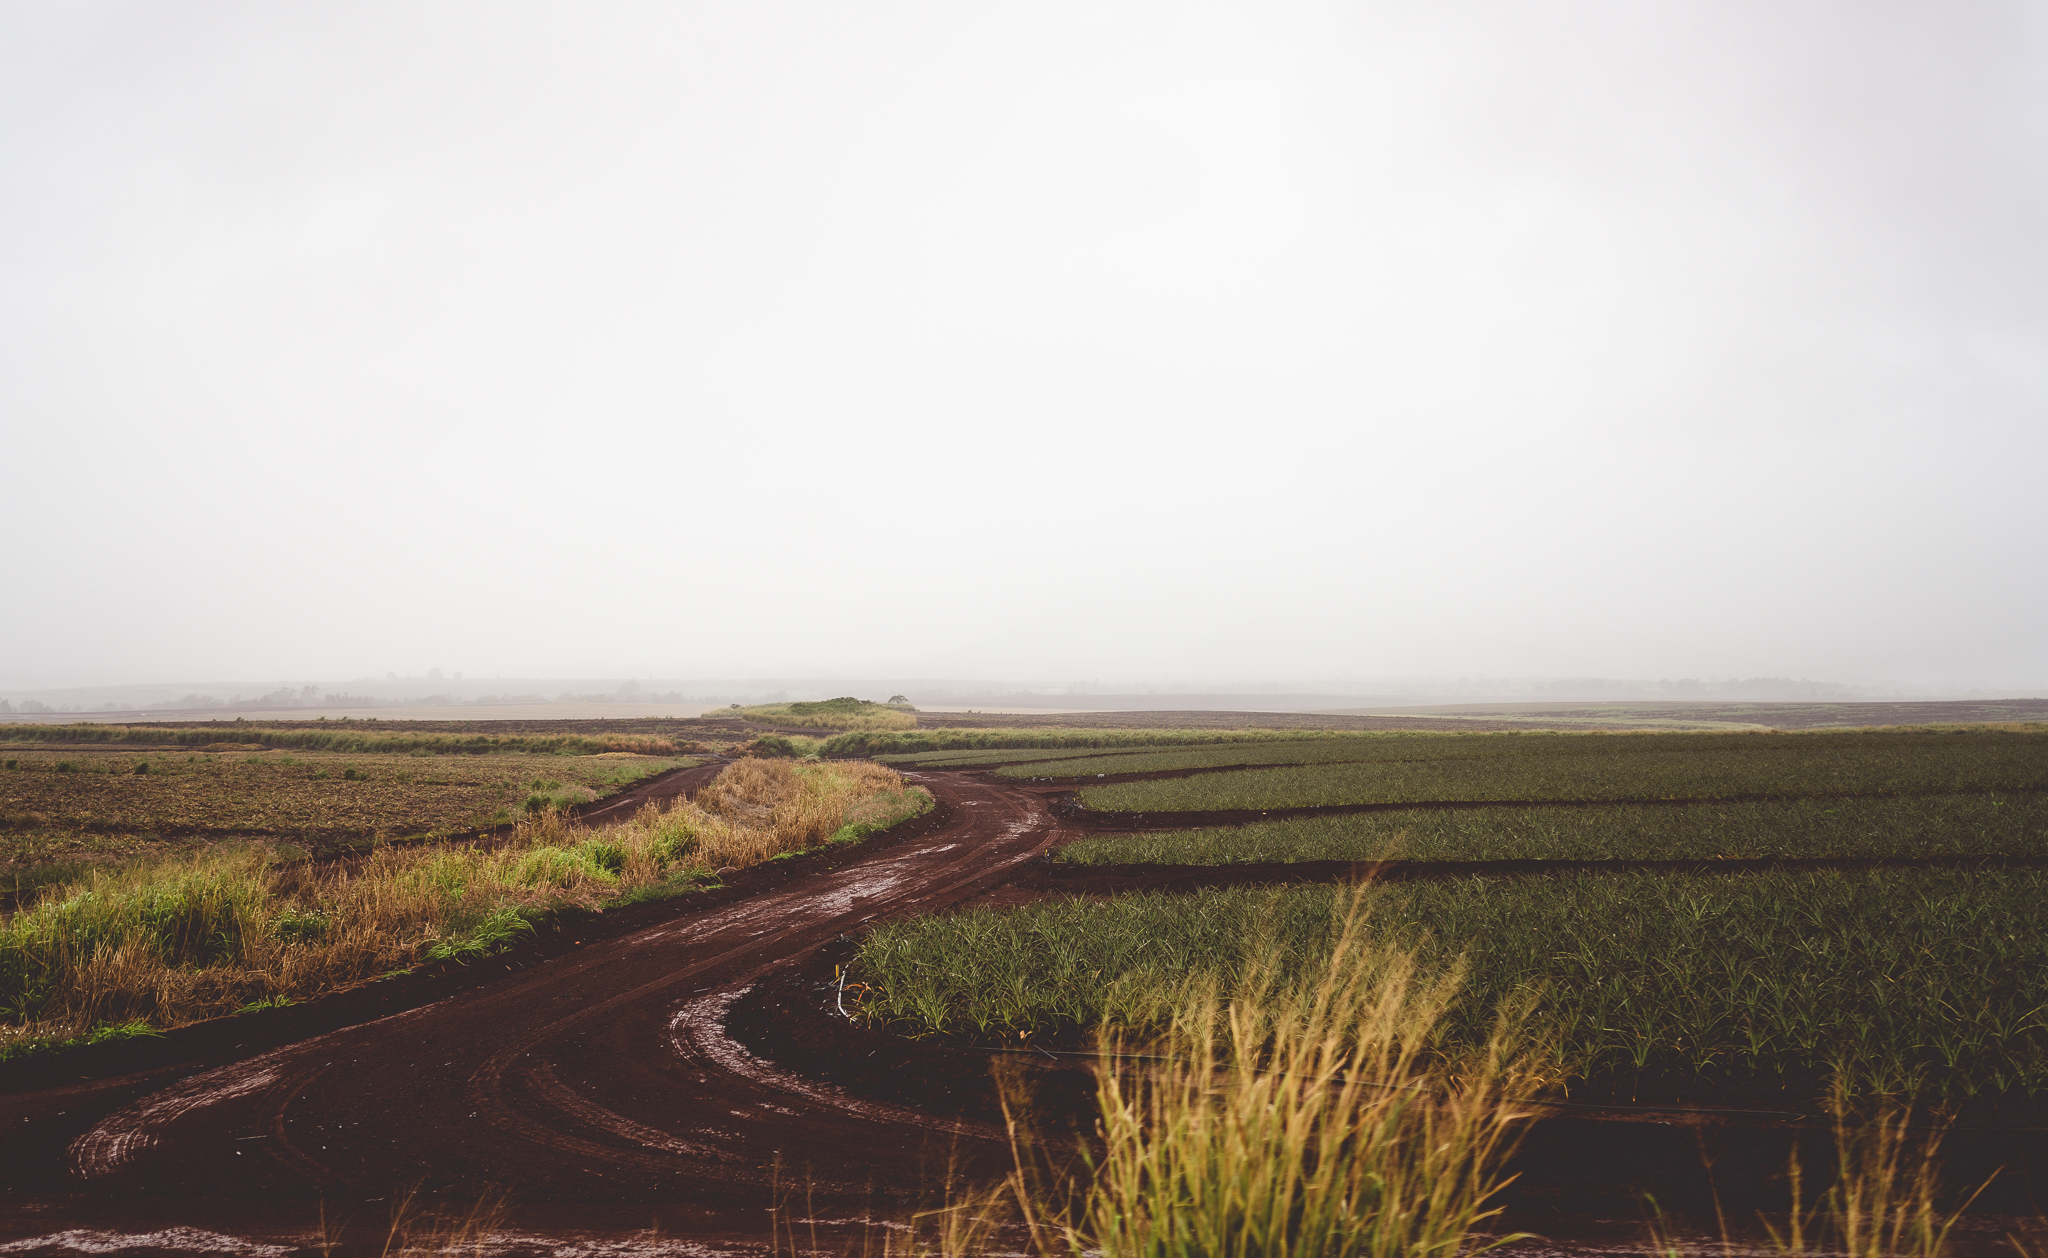 dirt road in a pineapple field on a foggy day